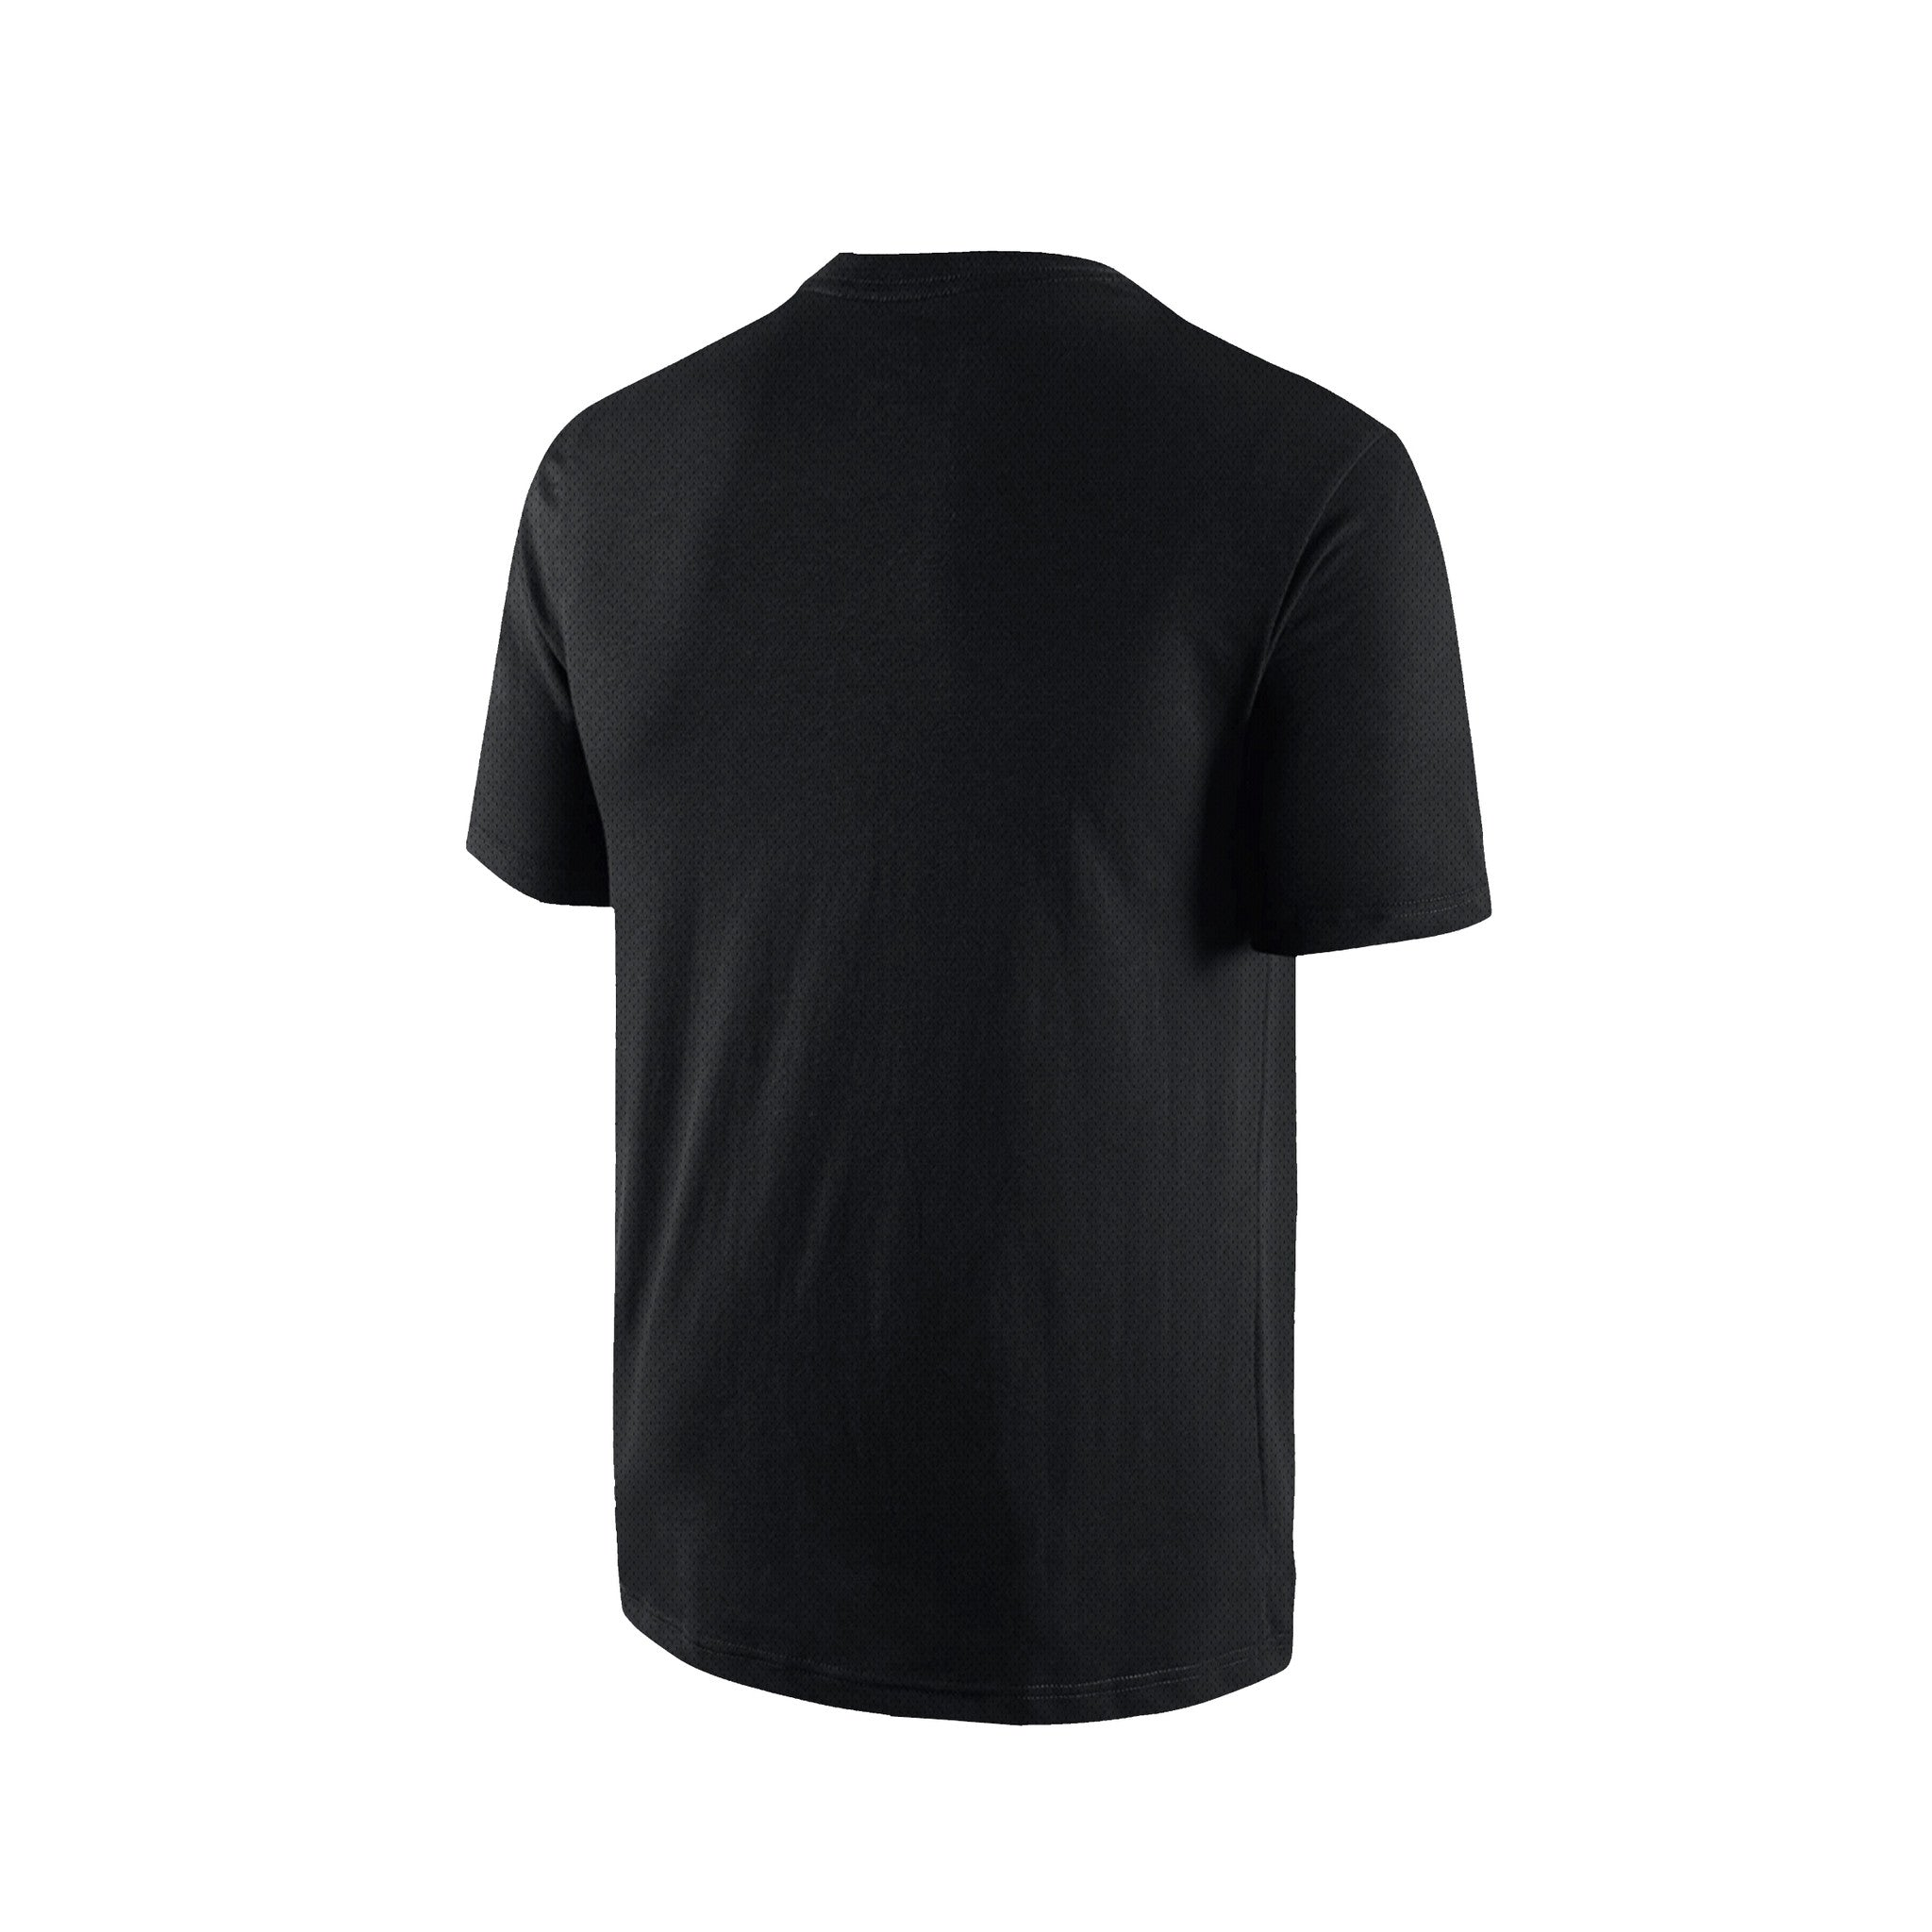 SportyFish Black Series black t-shirt: Wels Catfish back view